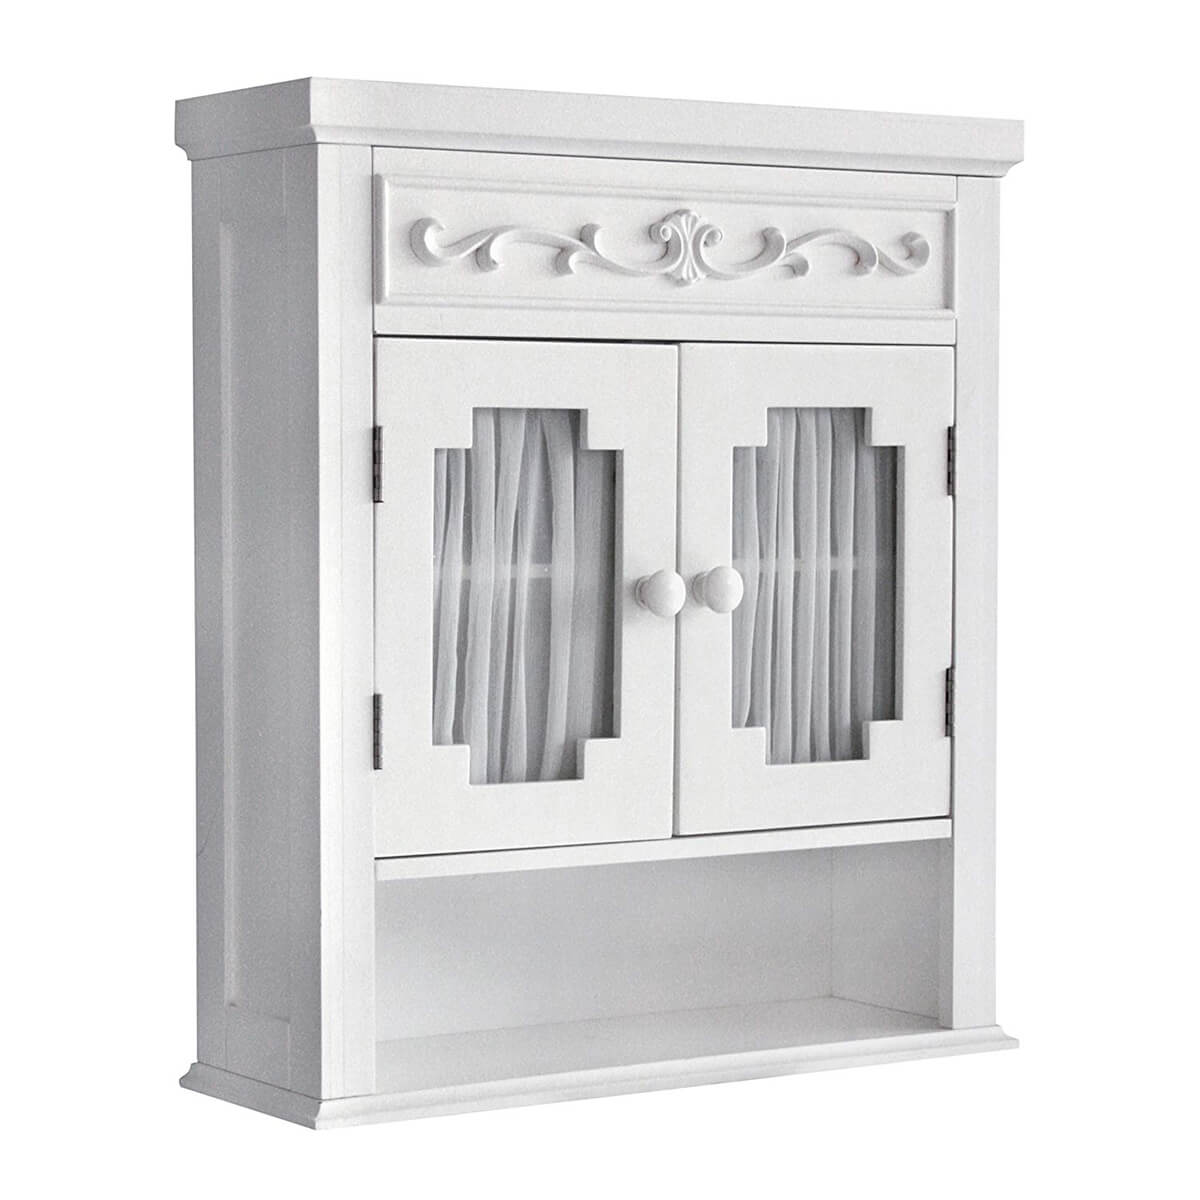 Elegant White Cabinet with Glass Paneled Doors